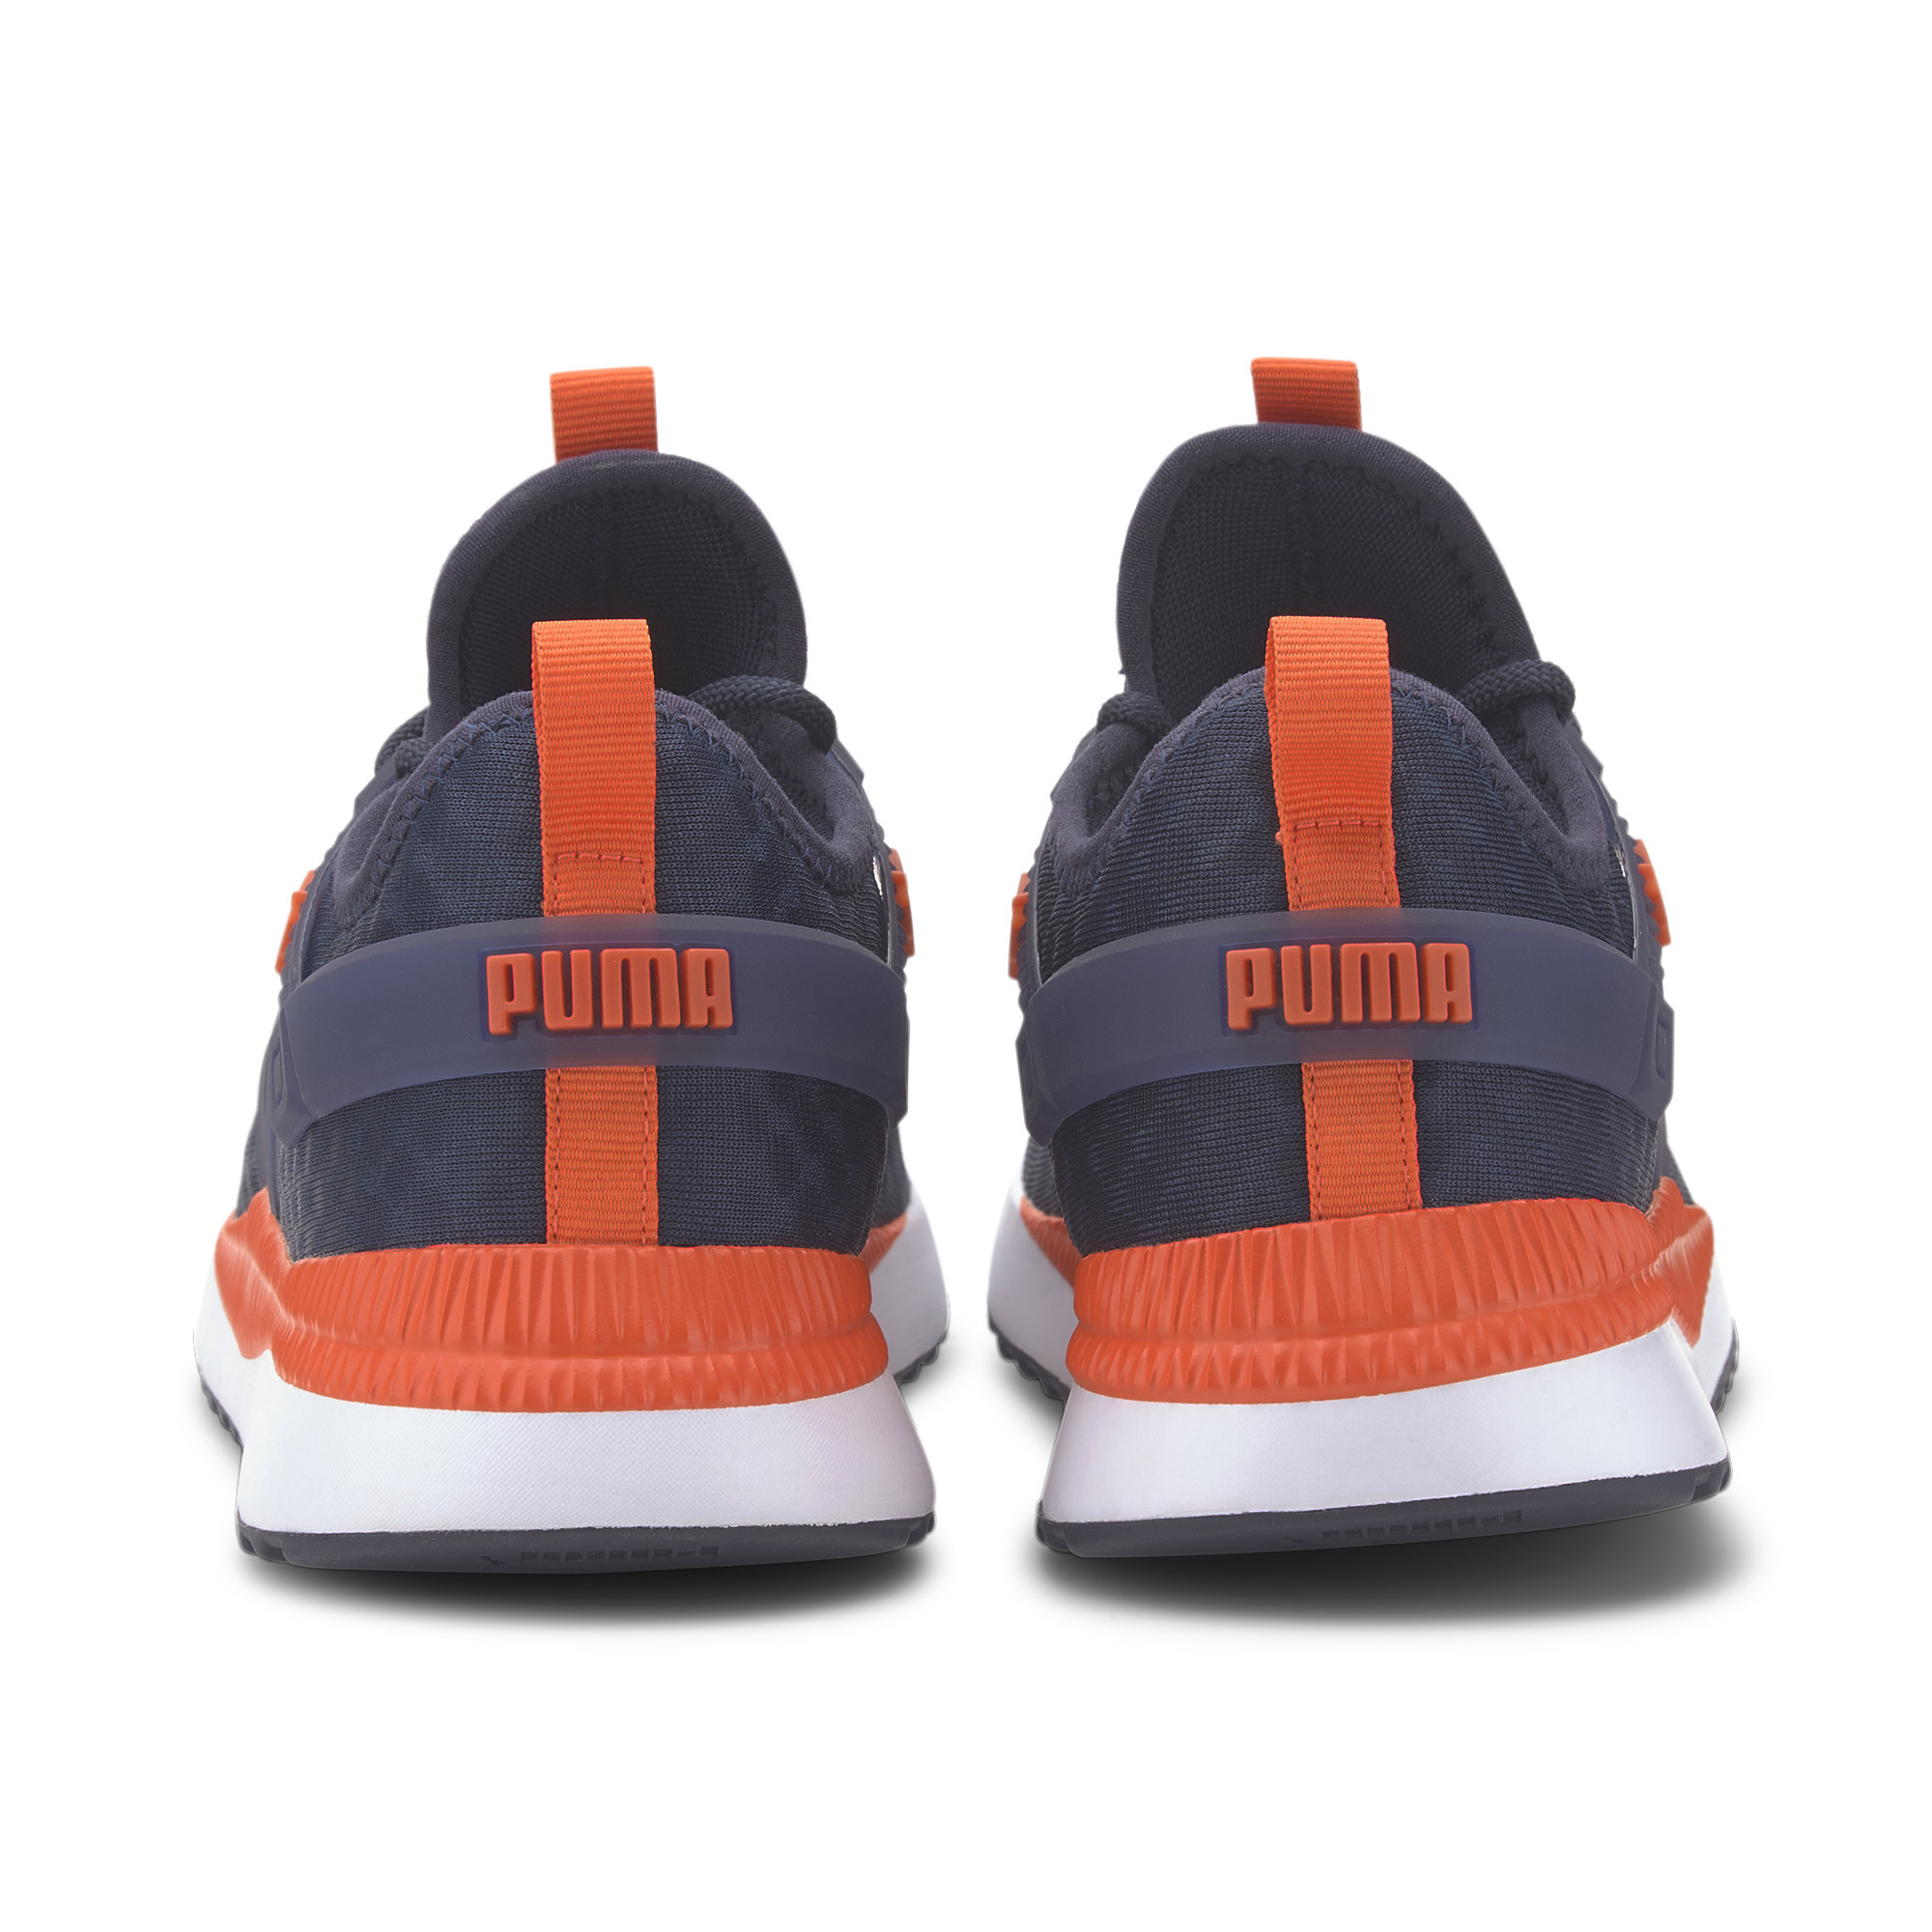 PUMA-Men-039-s-Pacer-Next-Excel-Core-Sneakers thumbnail 19